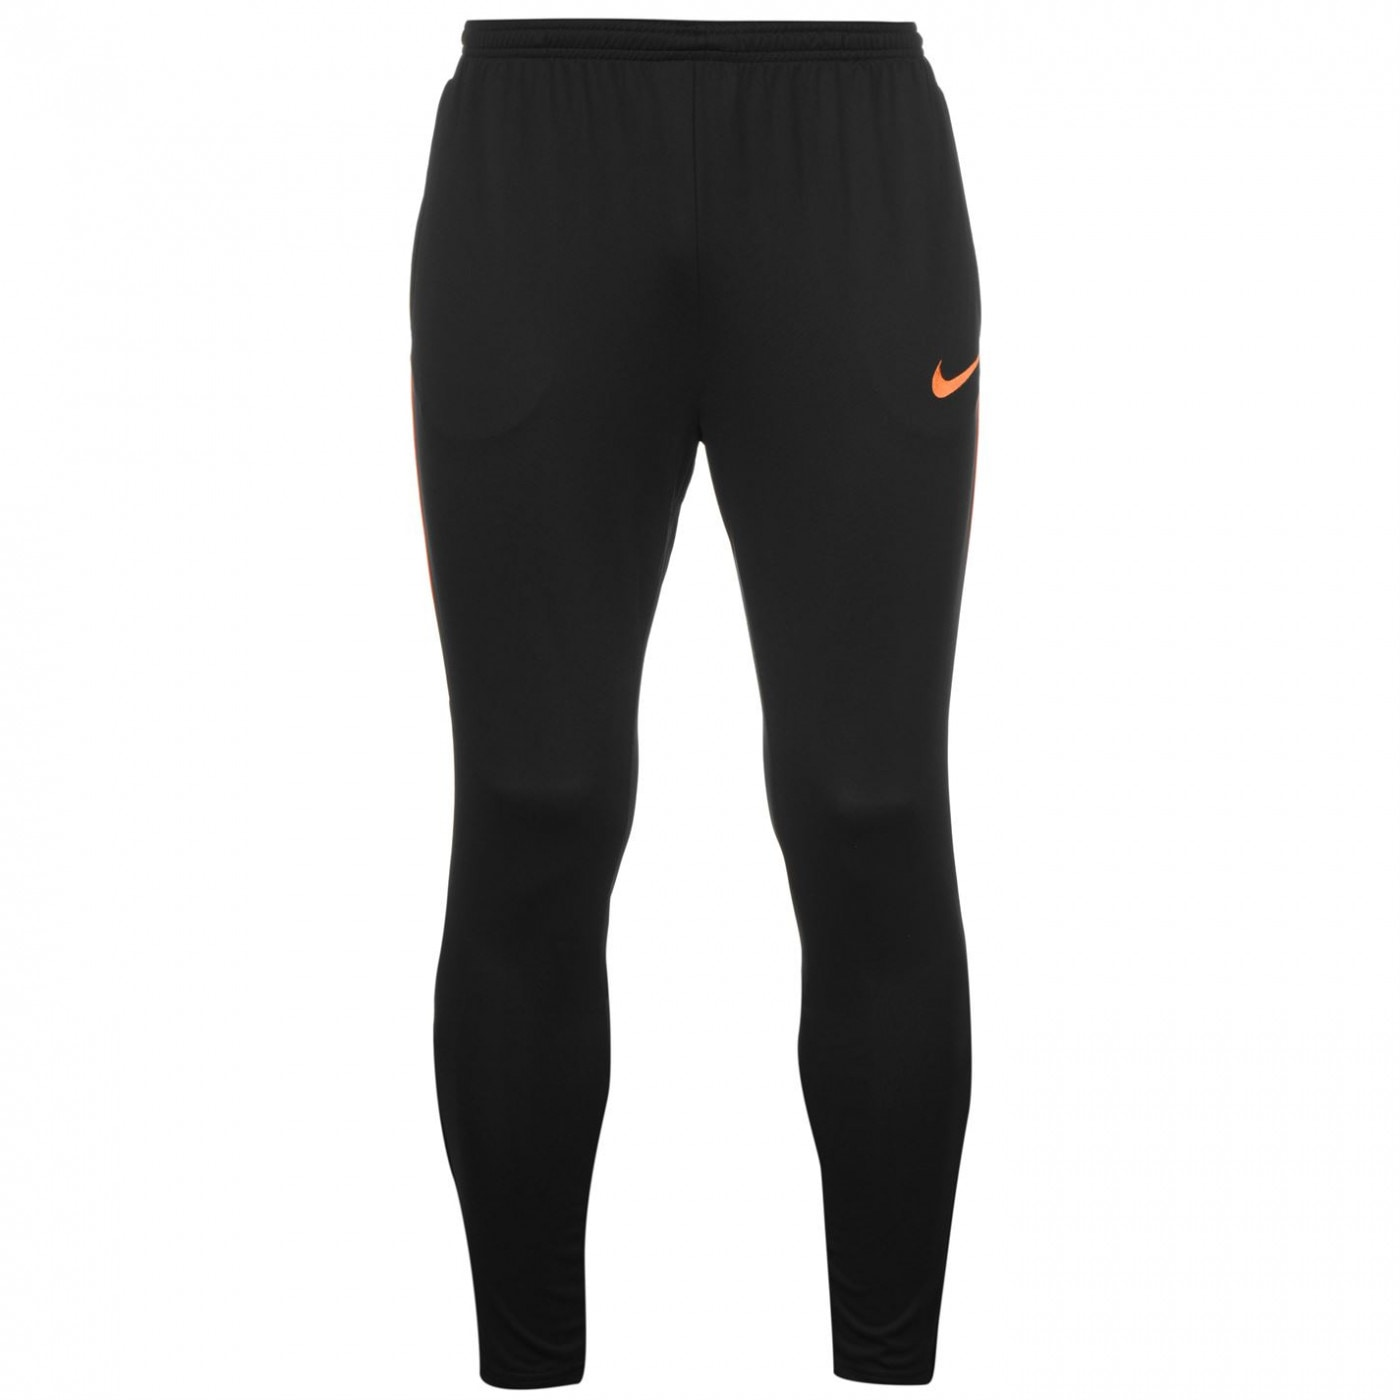 ab6bded48437 Nike Academy Pants Mens - FACTCOOL